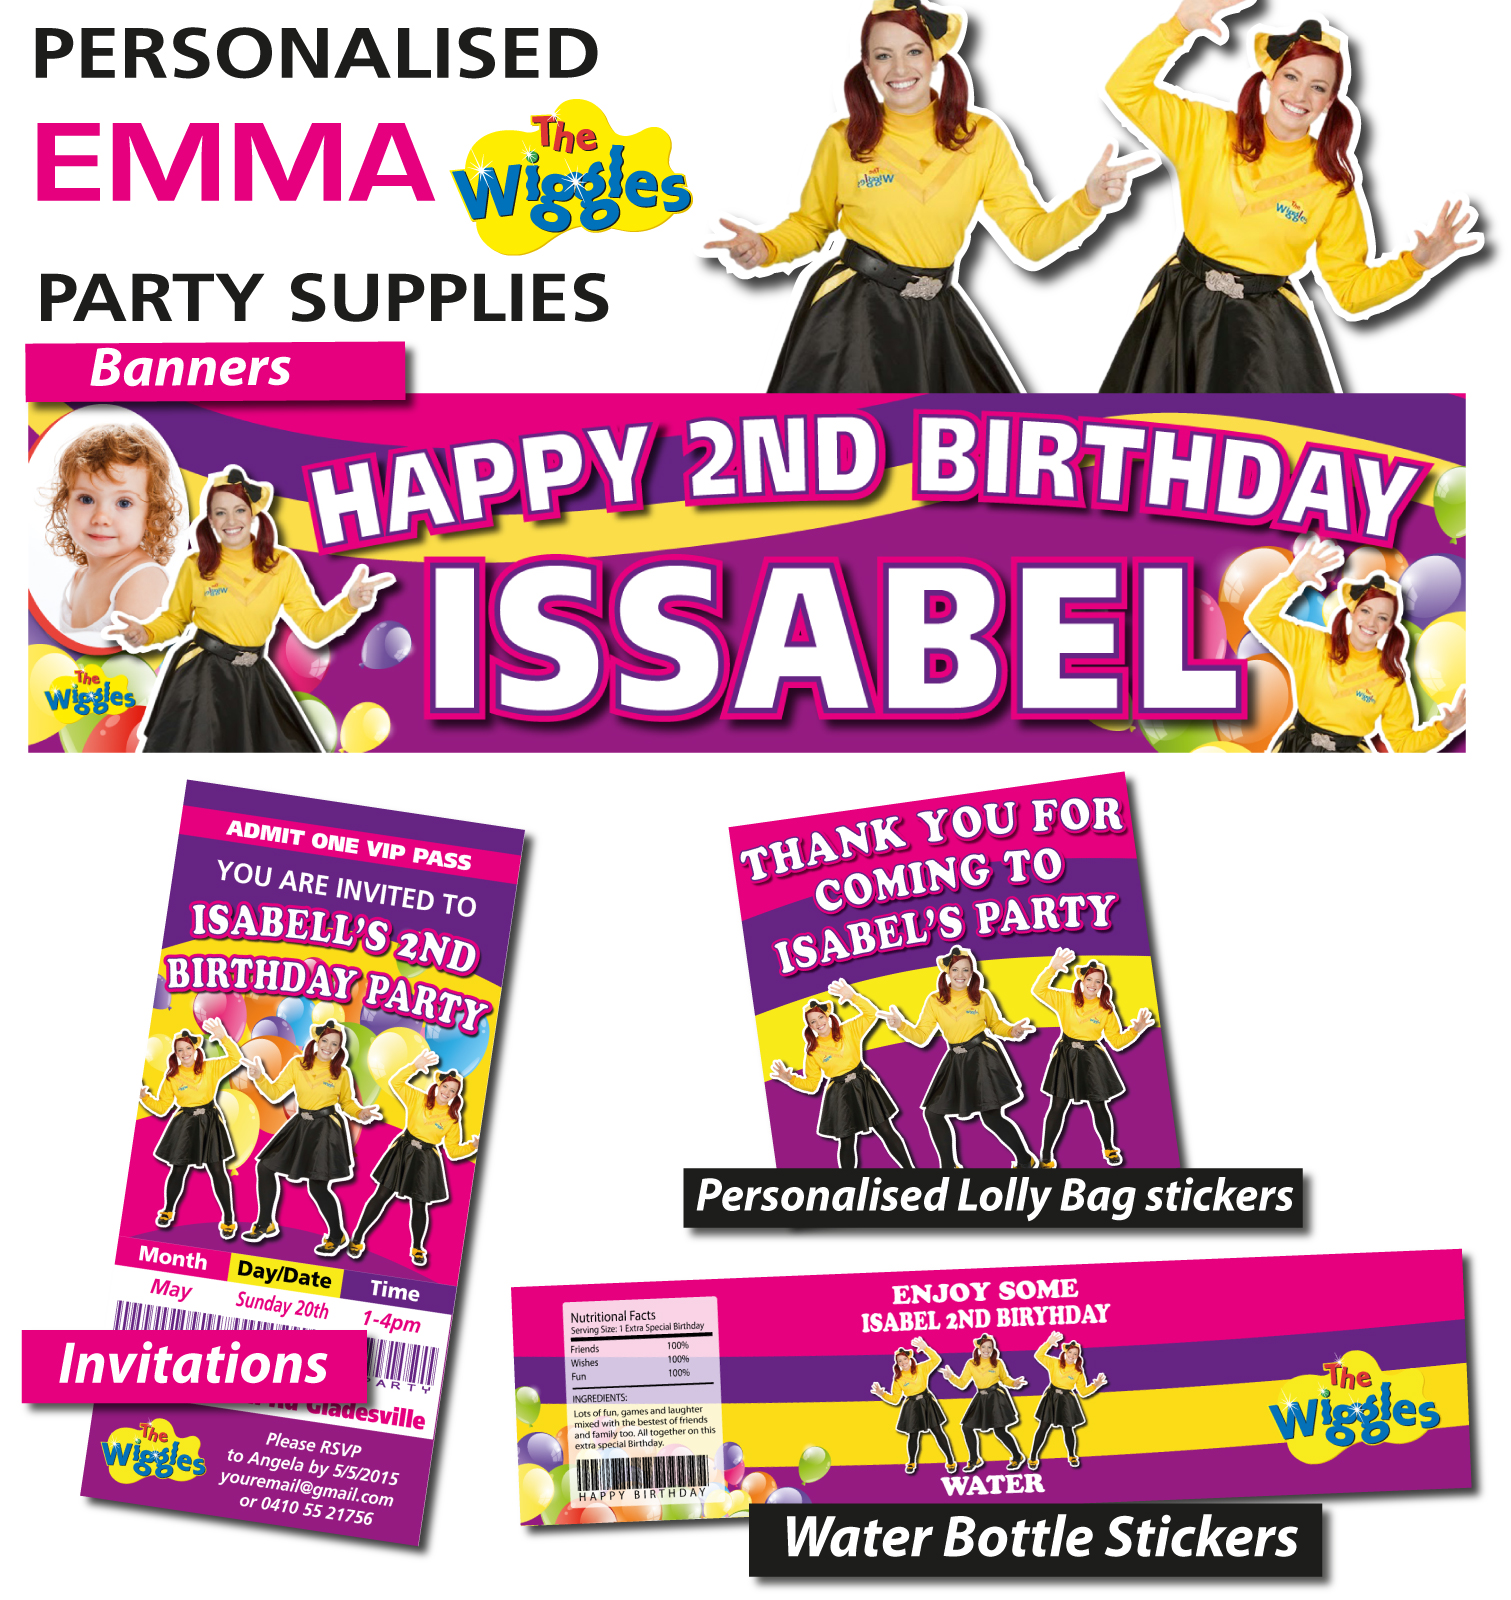 Personalised Emma Wiggles Birthday Party Banner Decorations Birthday